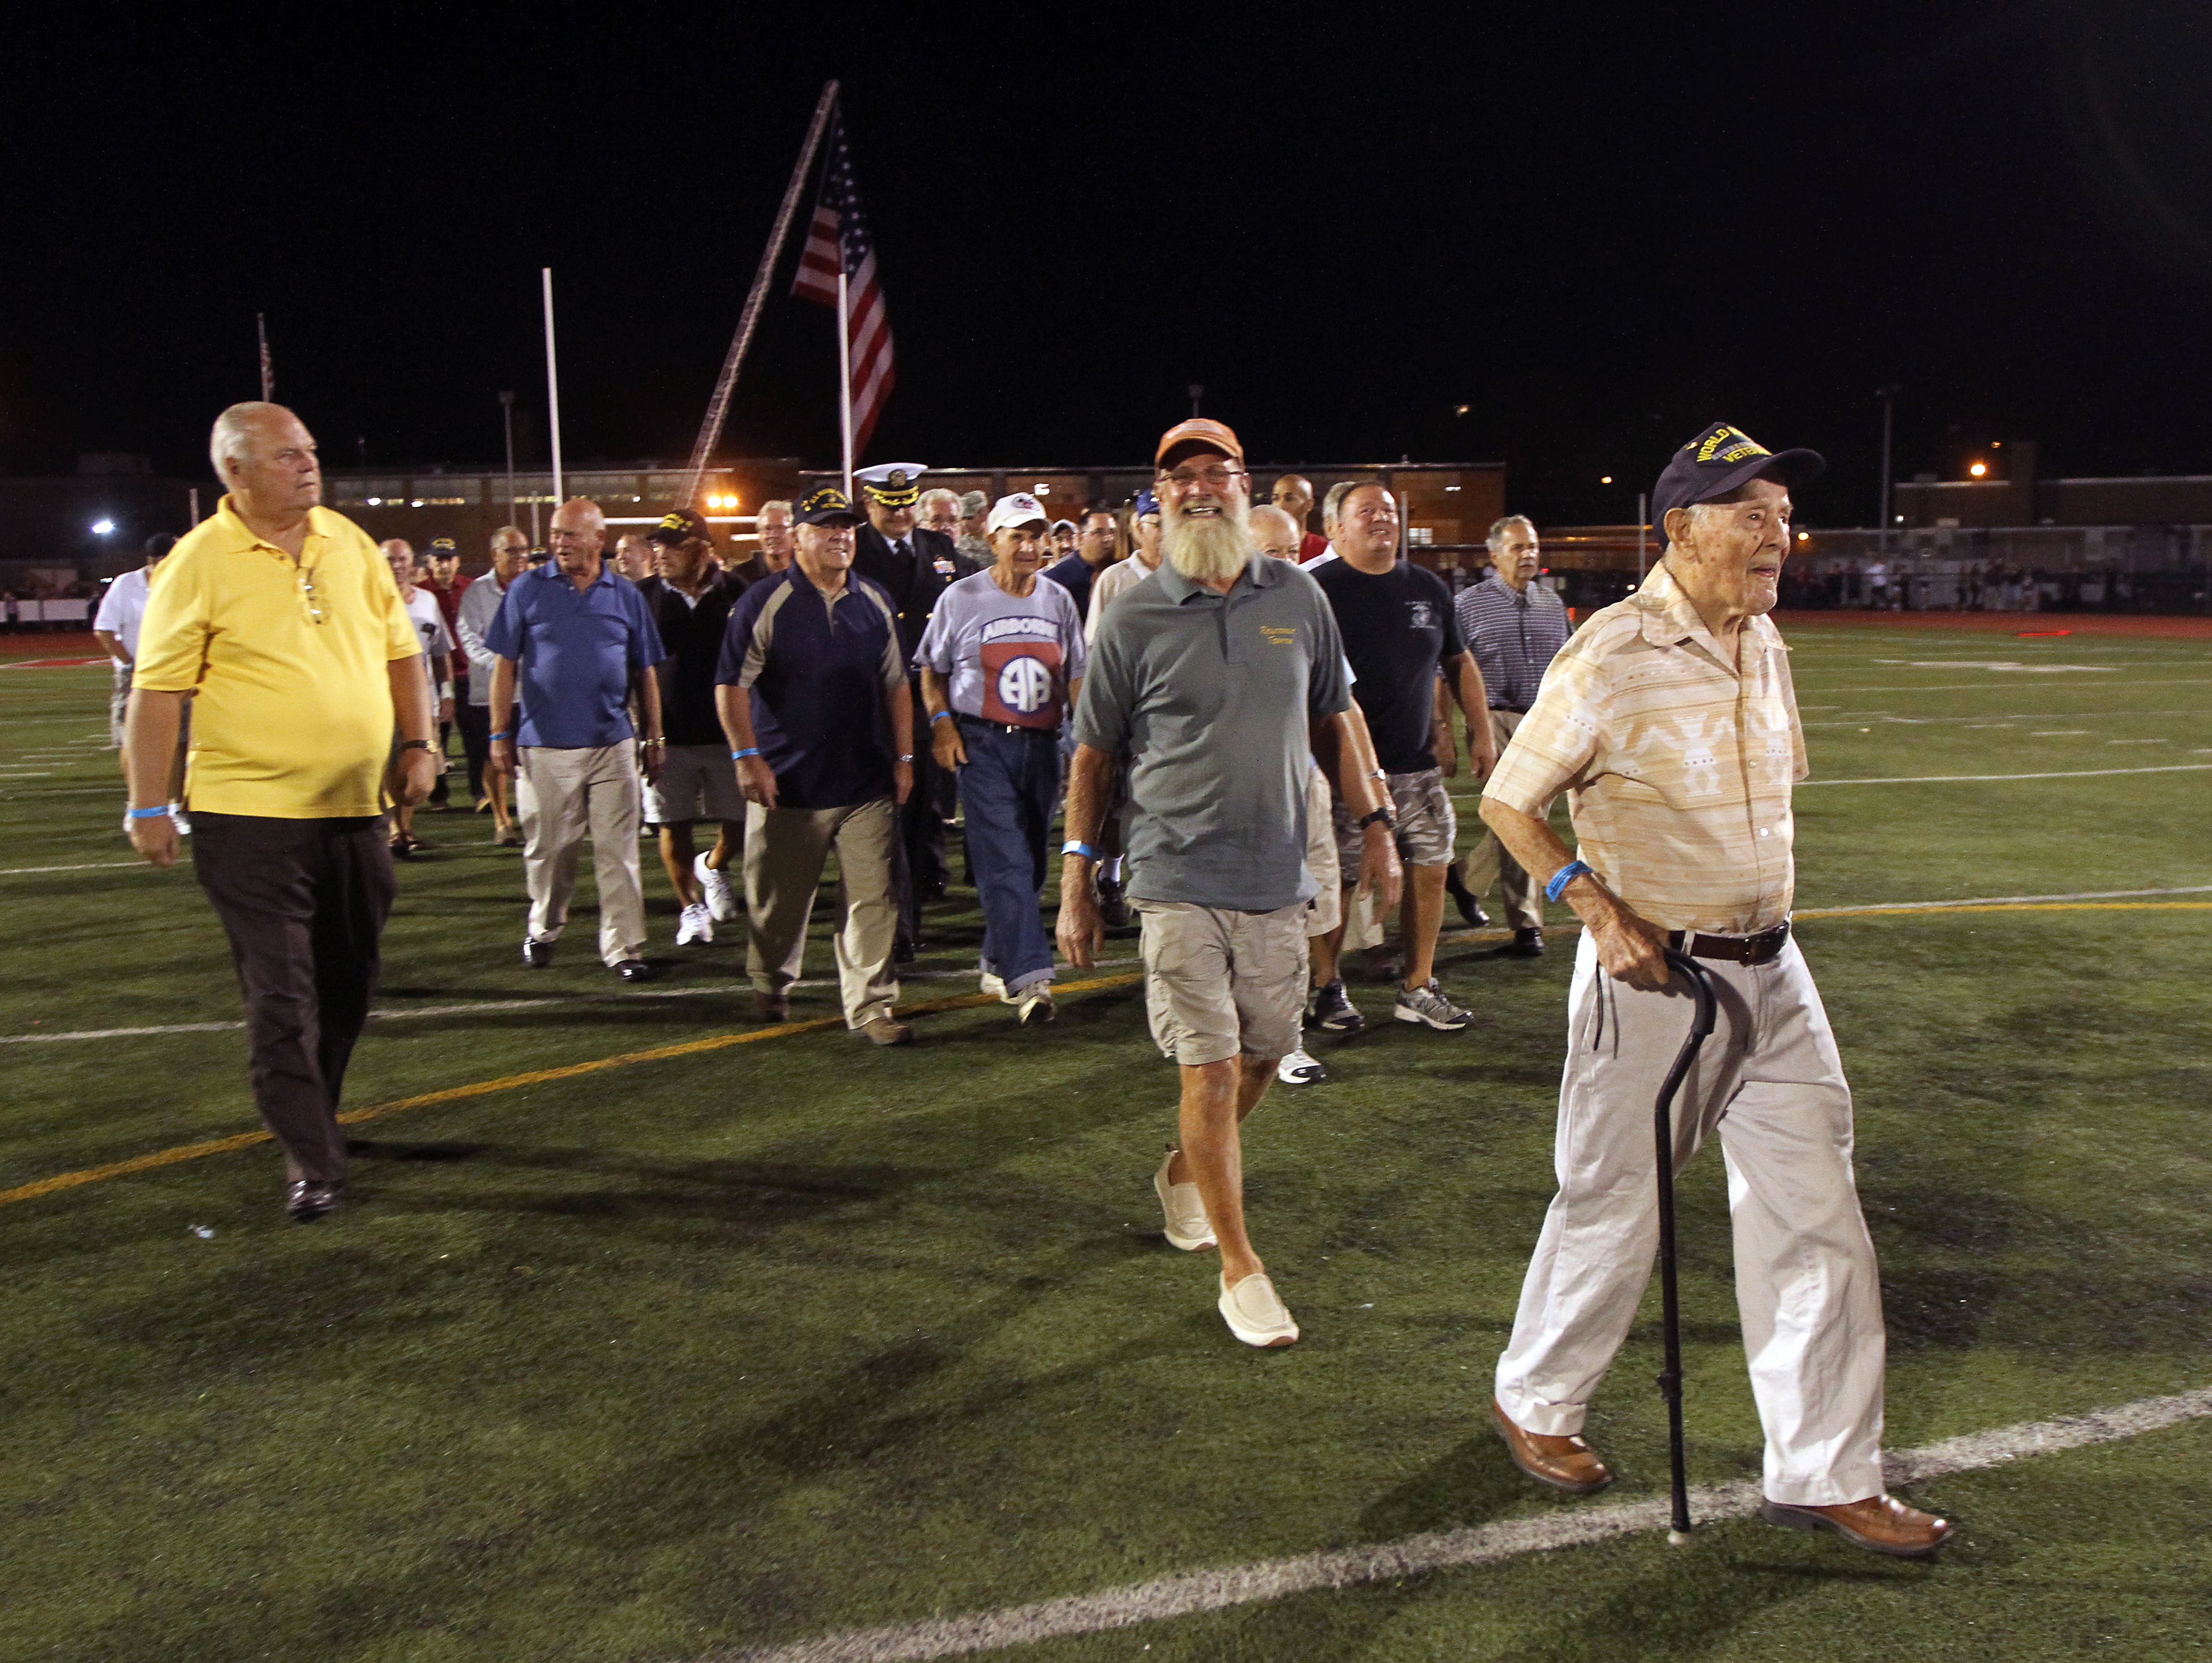 98-year-old World War II Air Force Veteran Steve Bolcar, r, leads a group of Veterans on the Boonton High football field as the school honored its graduate military veterans during halftime of the Boonton High School football game Friday night. The vets, some of whom are still residents, others coming back from out of town, also enjoyed a tailgate party prior to the game and ceremony. September 18, 2015, Boonton, NJ.